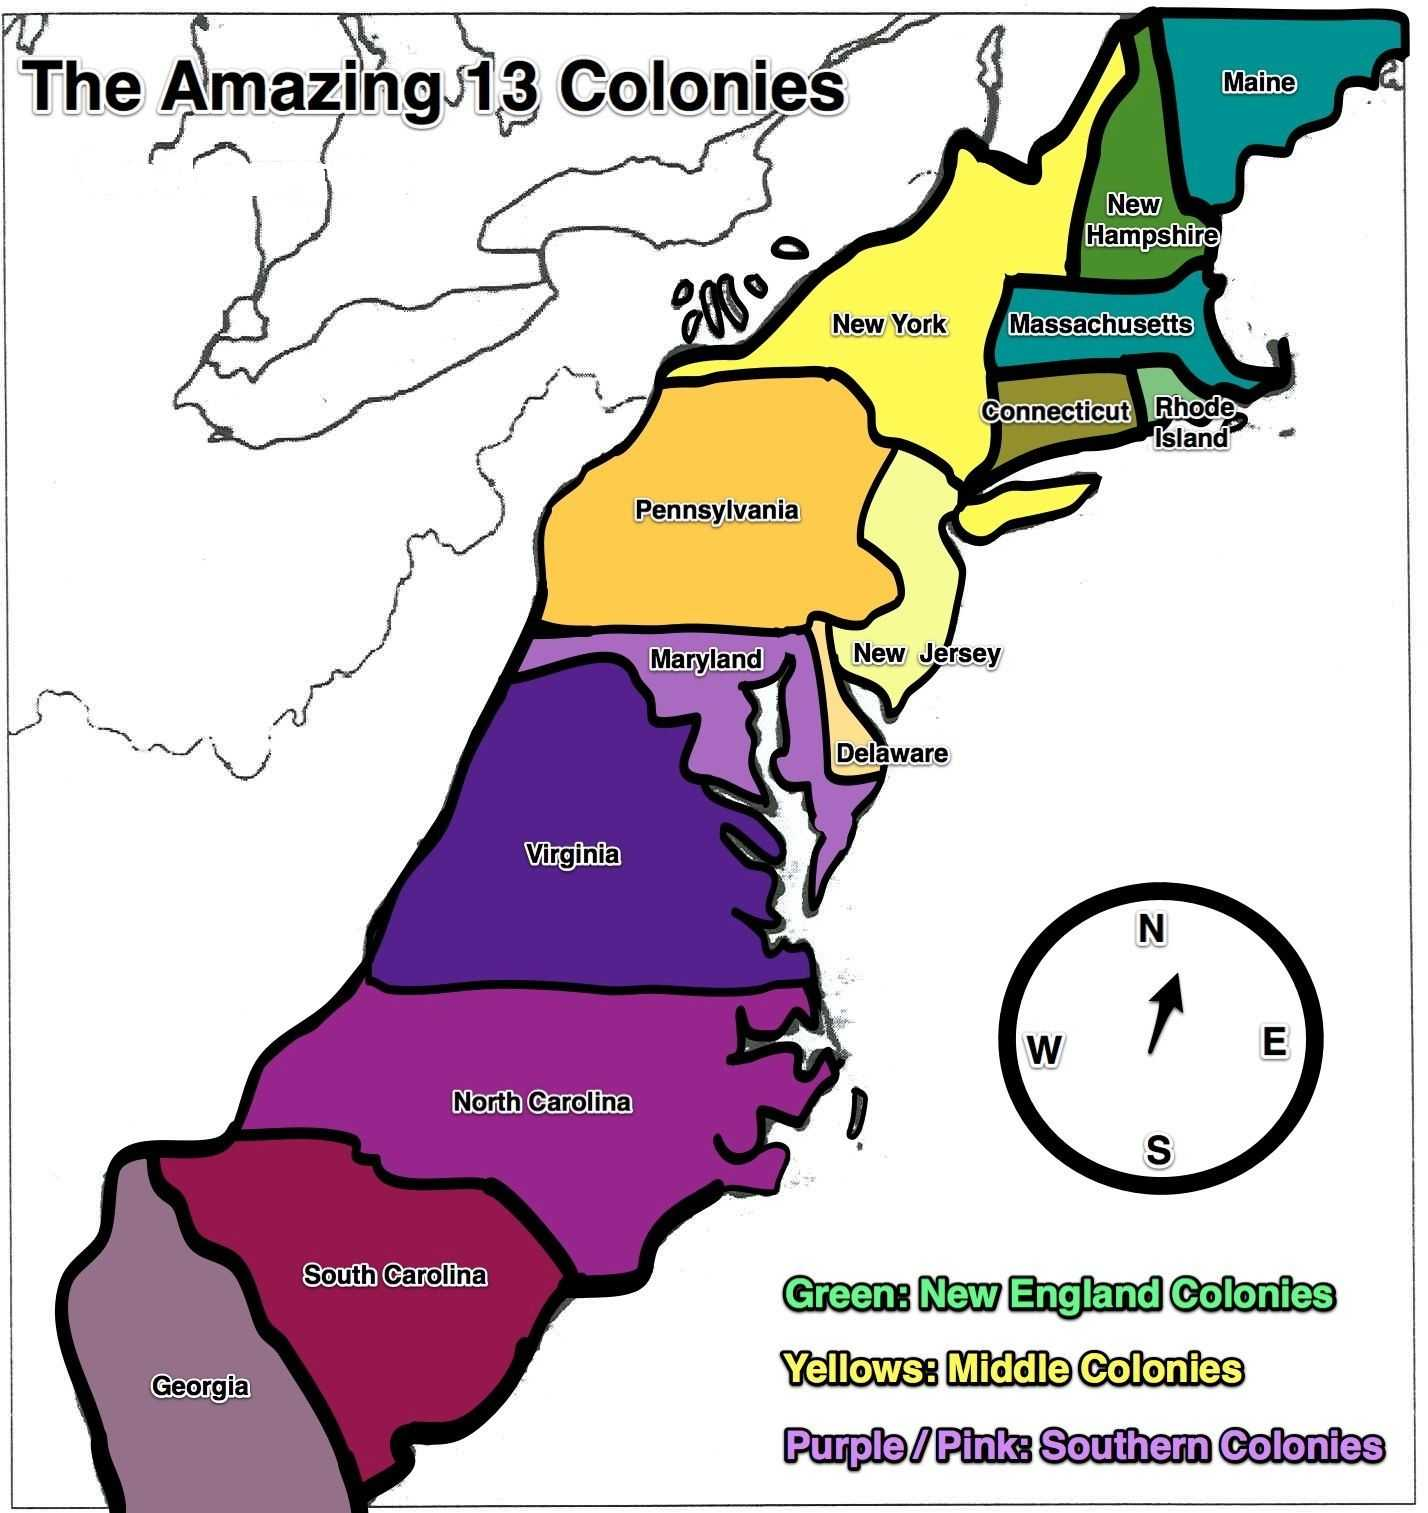 Congress In A Flash Worksheet Answers and 13 Colonies Map Free Home School